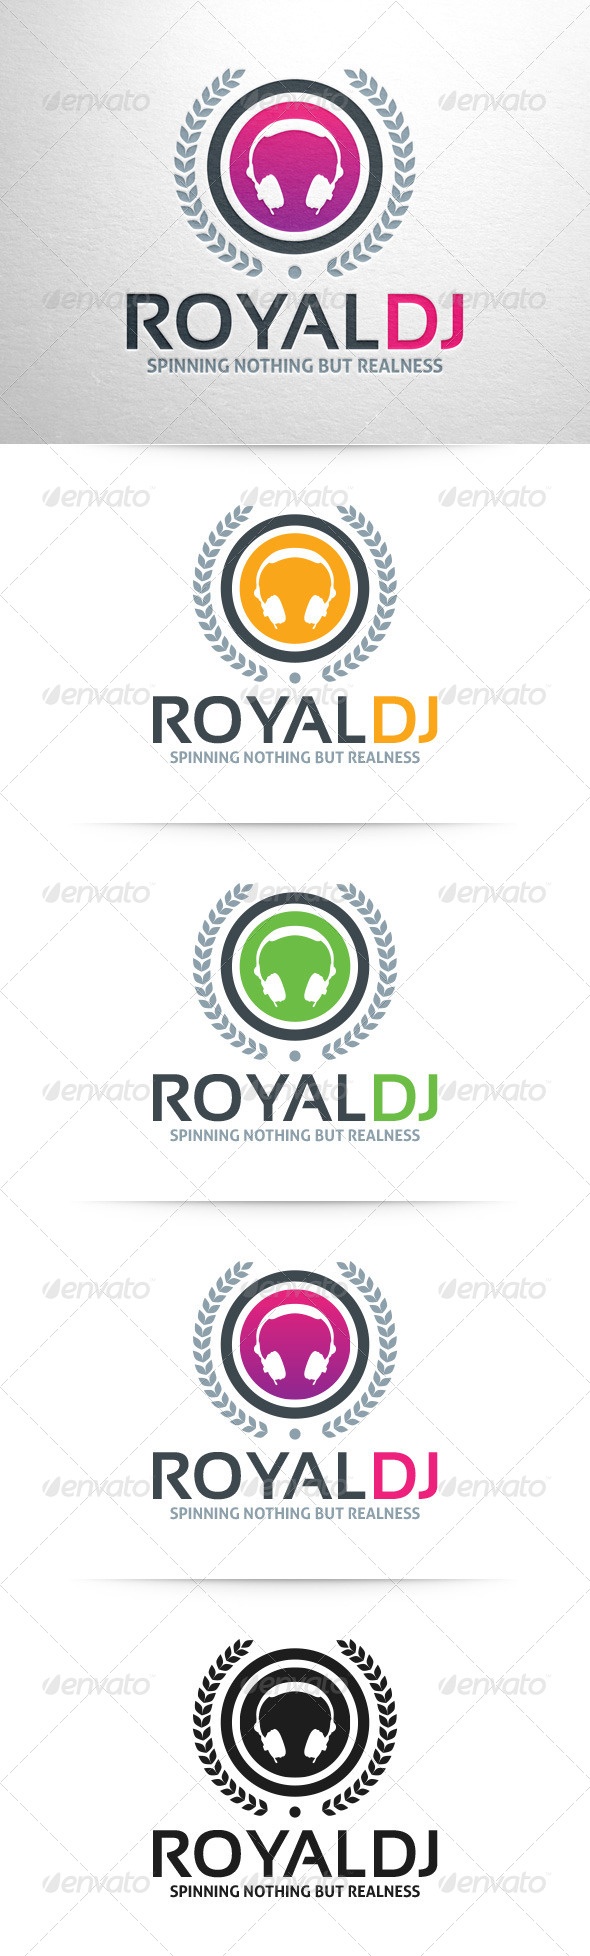 GraphicRiver Royal DJ Logo v2 7628627